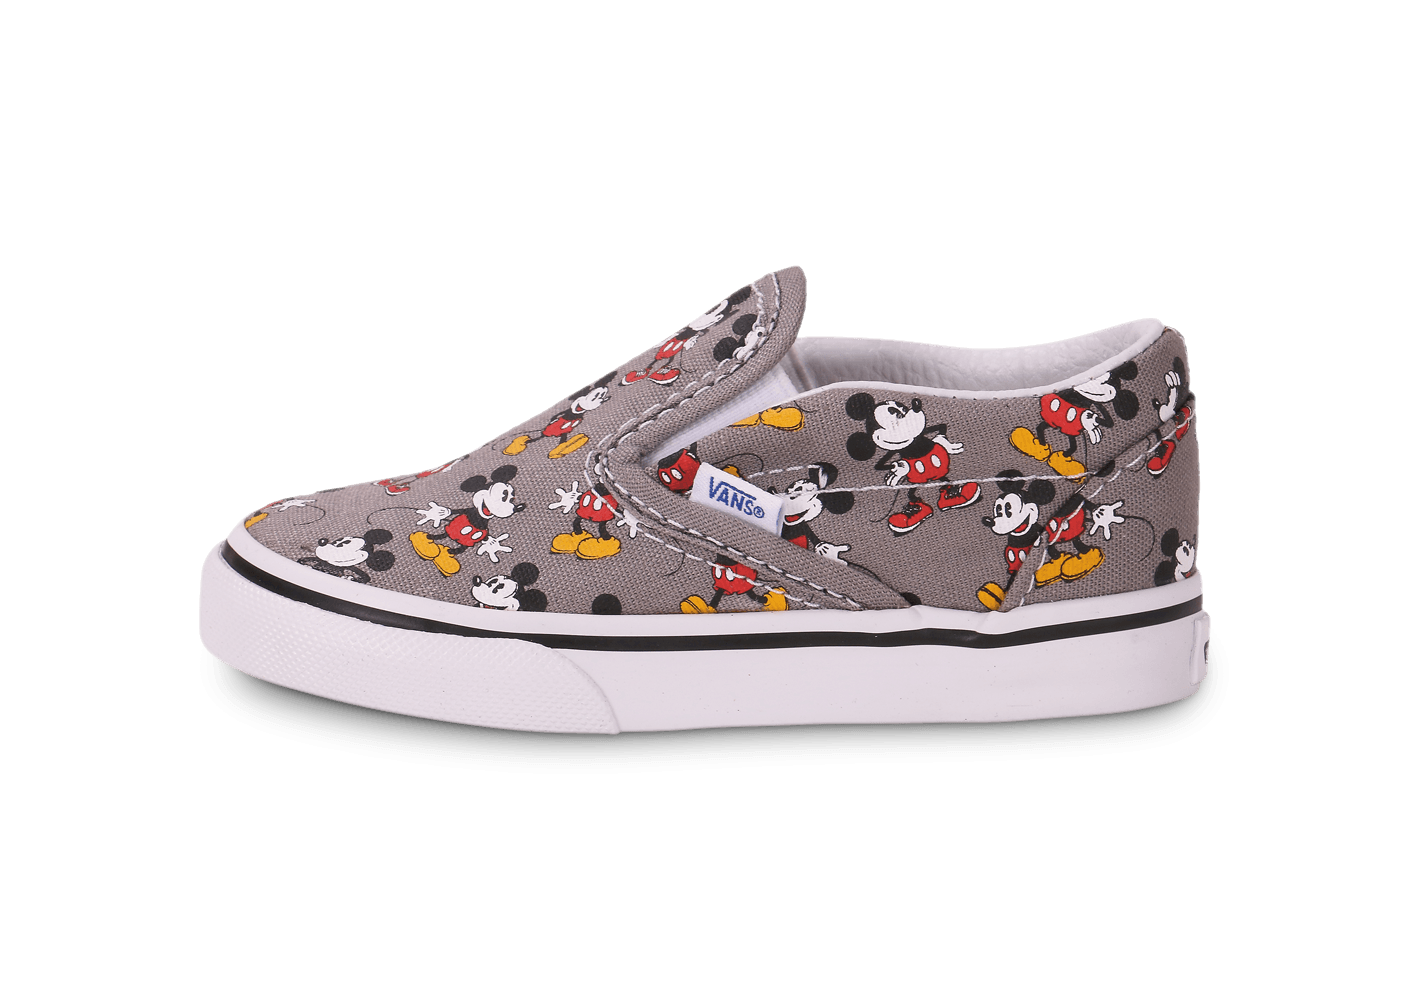 Grise Chaussures Vans Mickey Bébé Slip On Classic IYE2D9WH